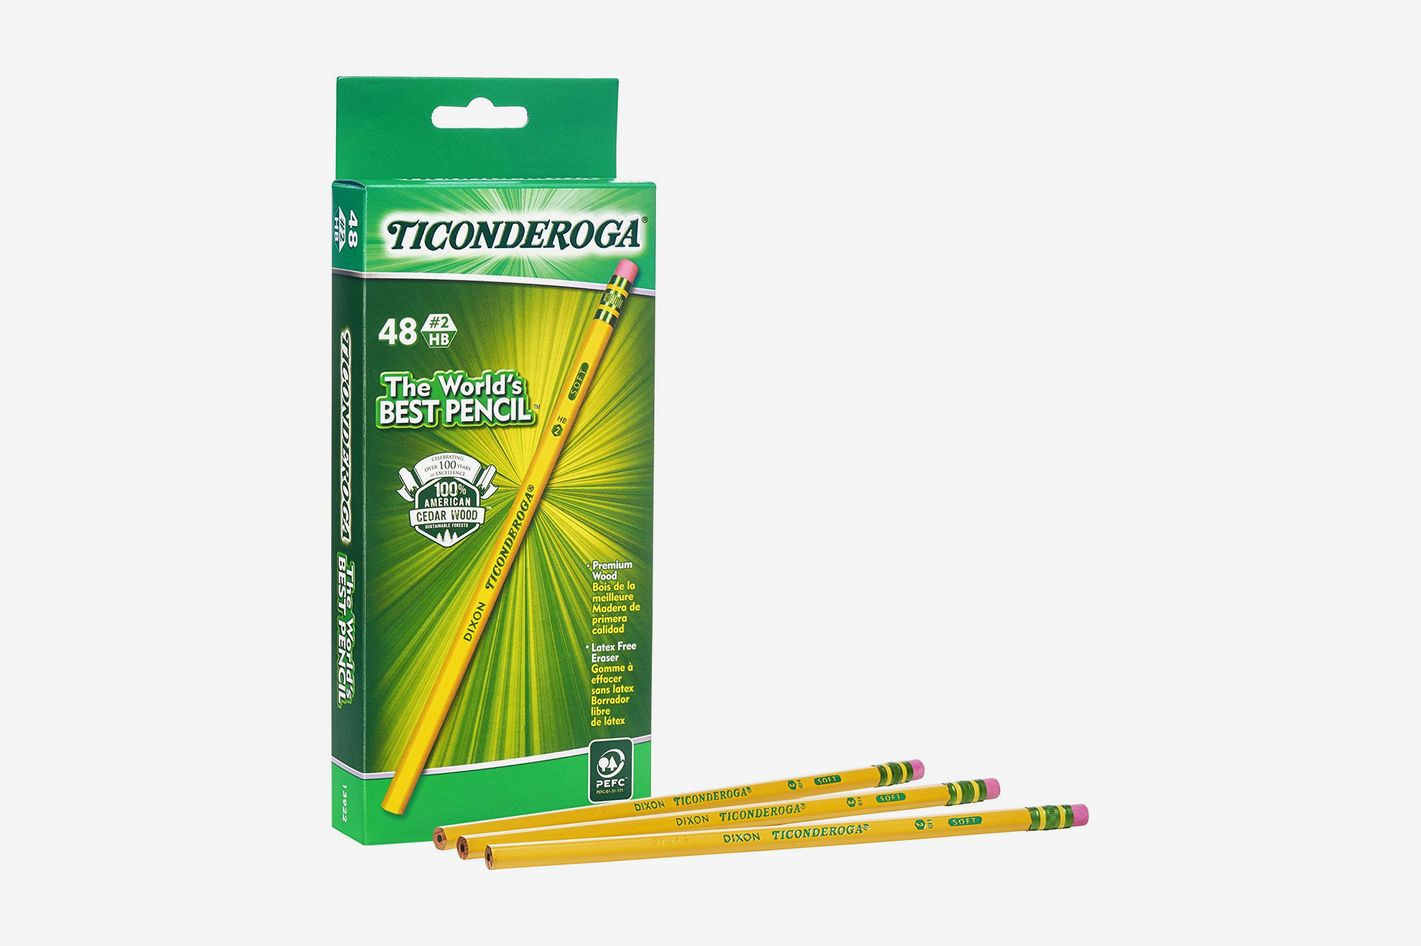 Dixon Ticonderoga Wood-Cased Graphite Pencils, 48-Count